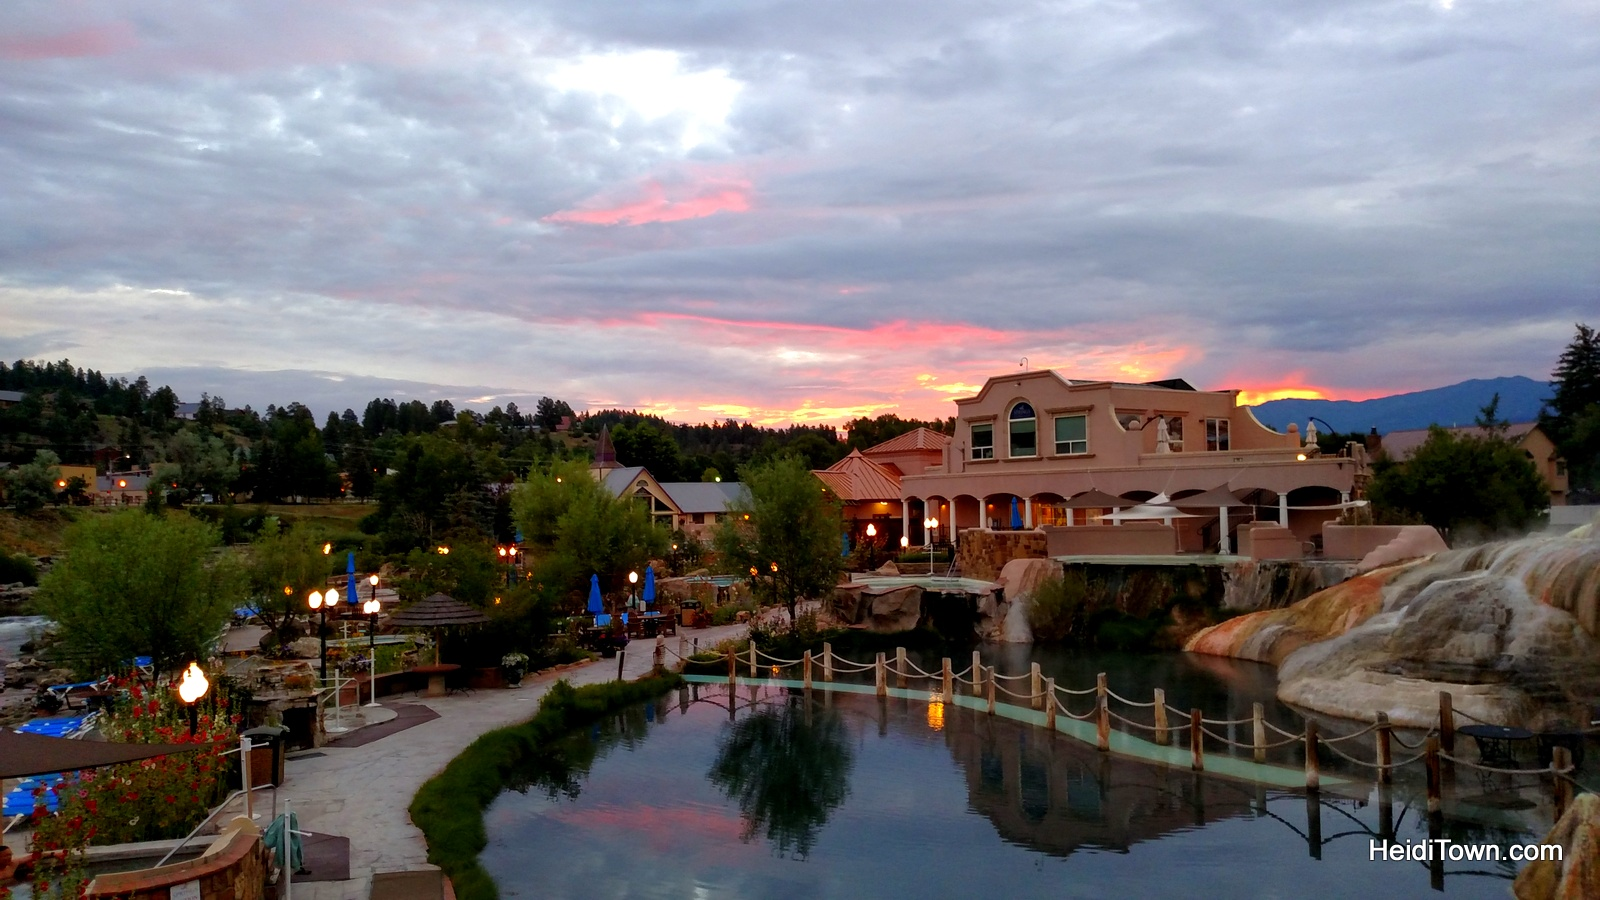 Top 10 HeidiTown Highlights of 2015. Sunrise at The Springs in Pagosa Springs, Colorado.